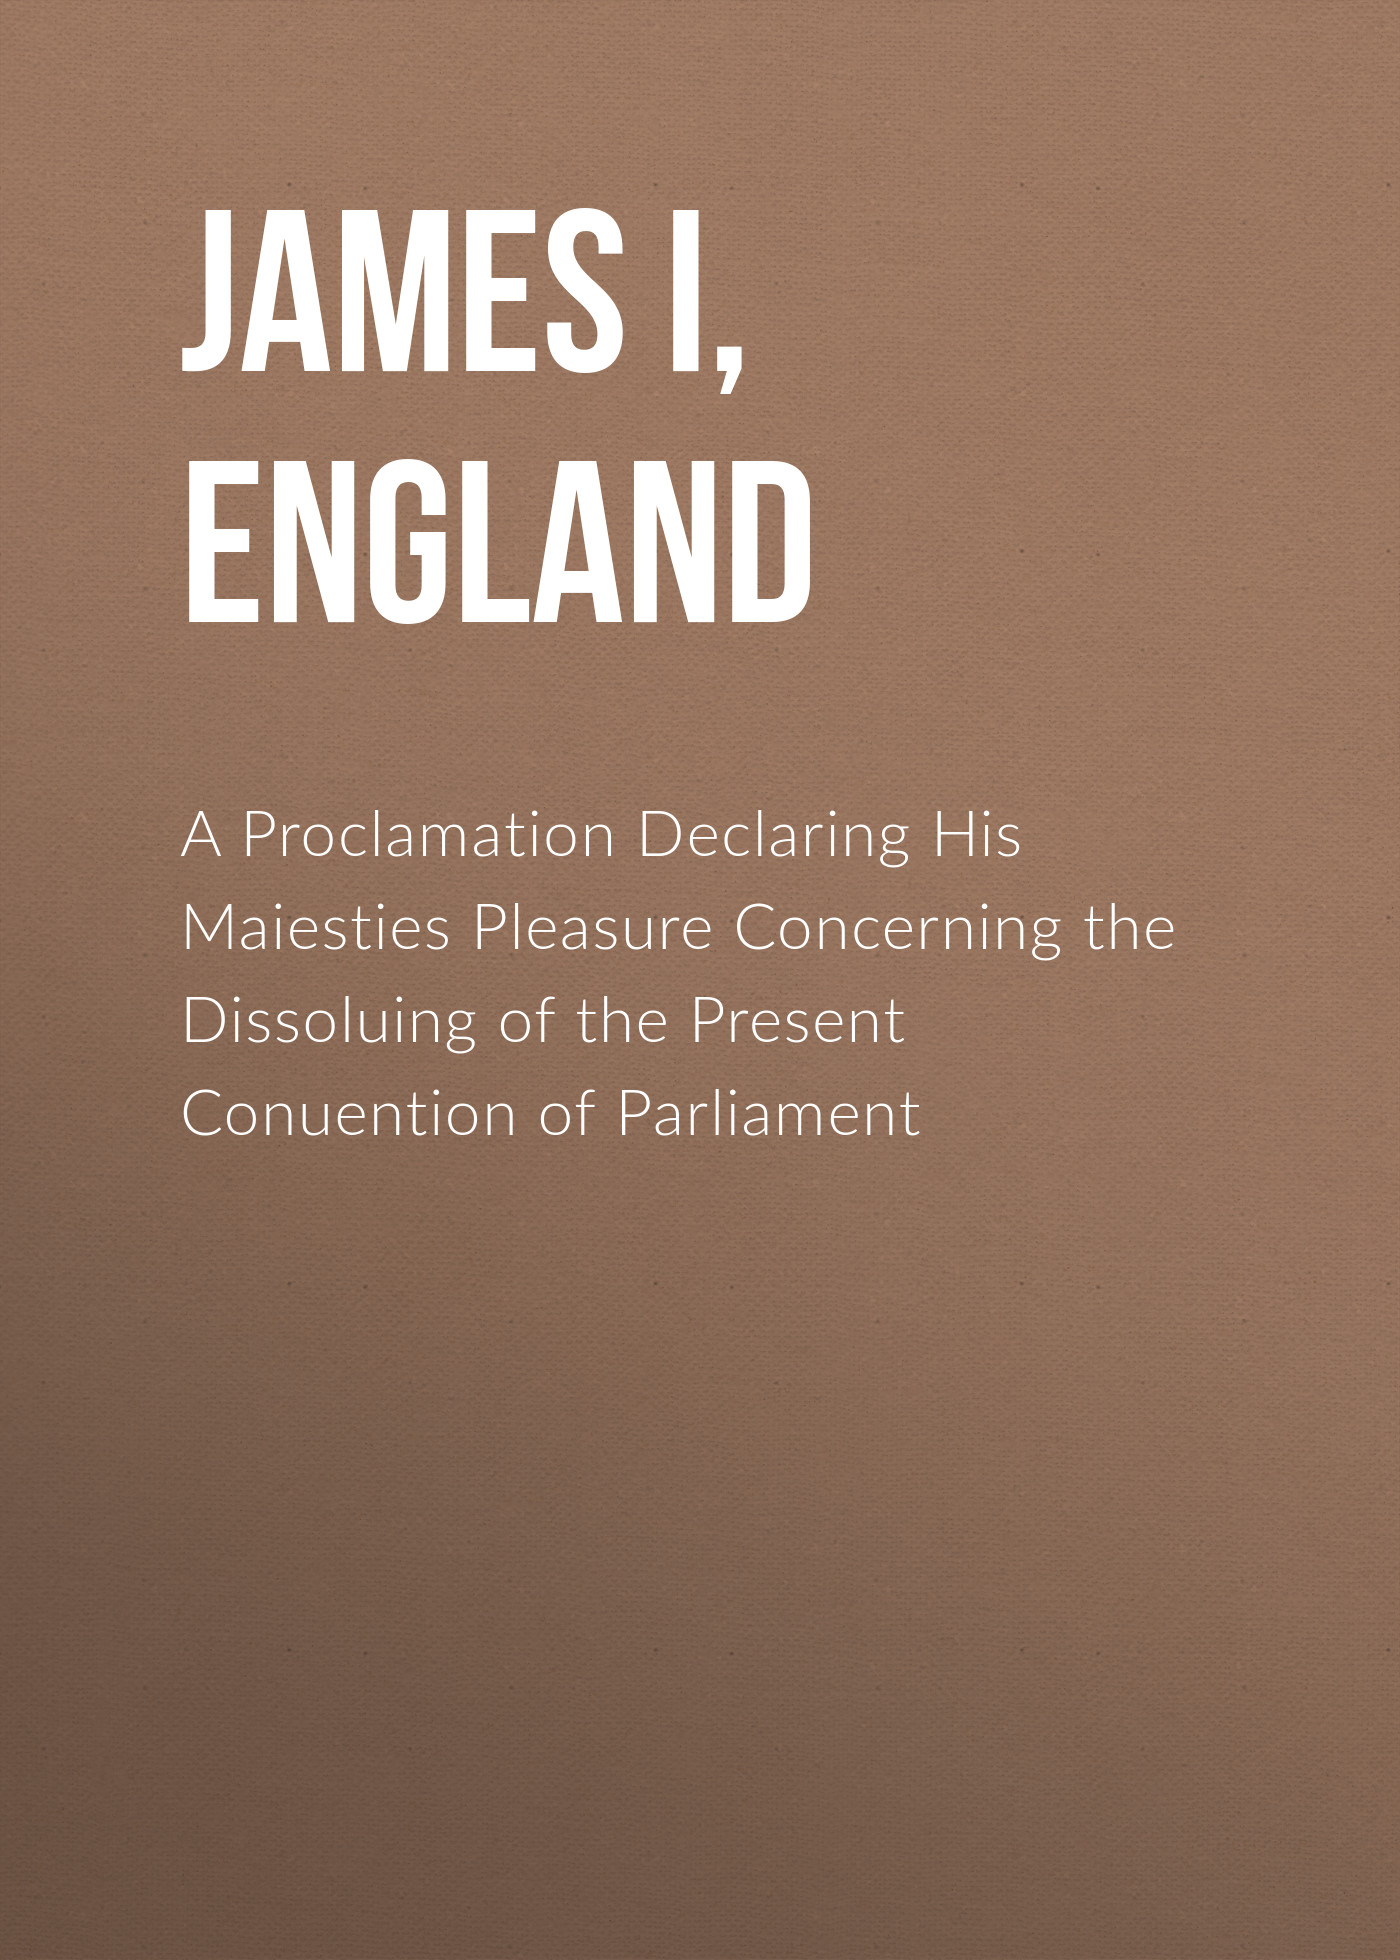 James I, King of England A Proclamation Declaring His Maiesties Pleasure Concerning the Dissoluing of the Present Conuention of Parliament king james nkum power of sex for singles